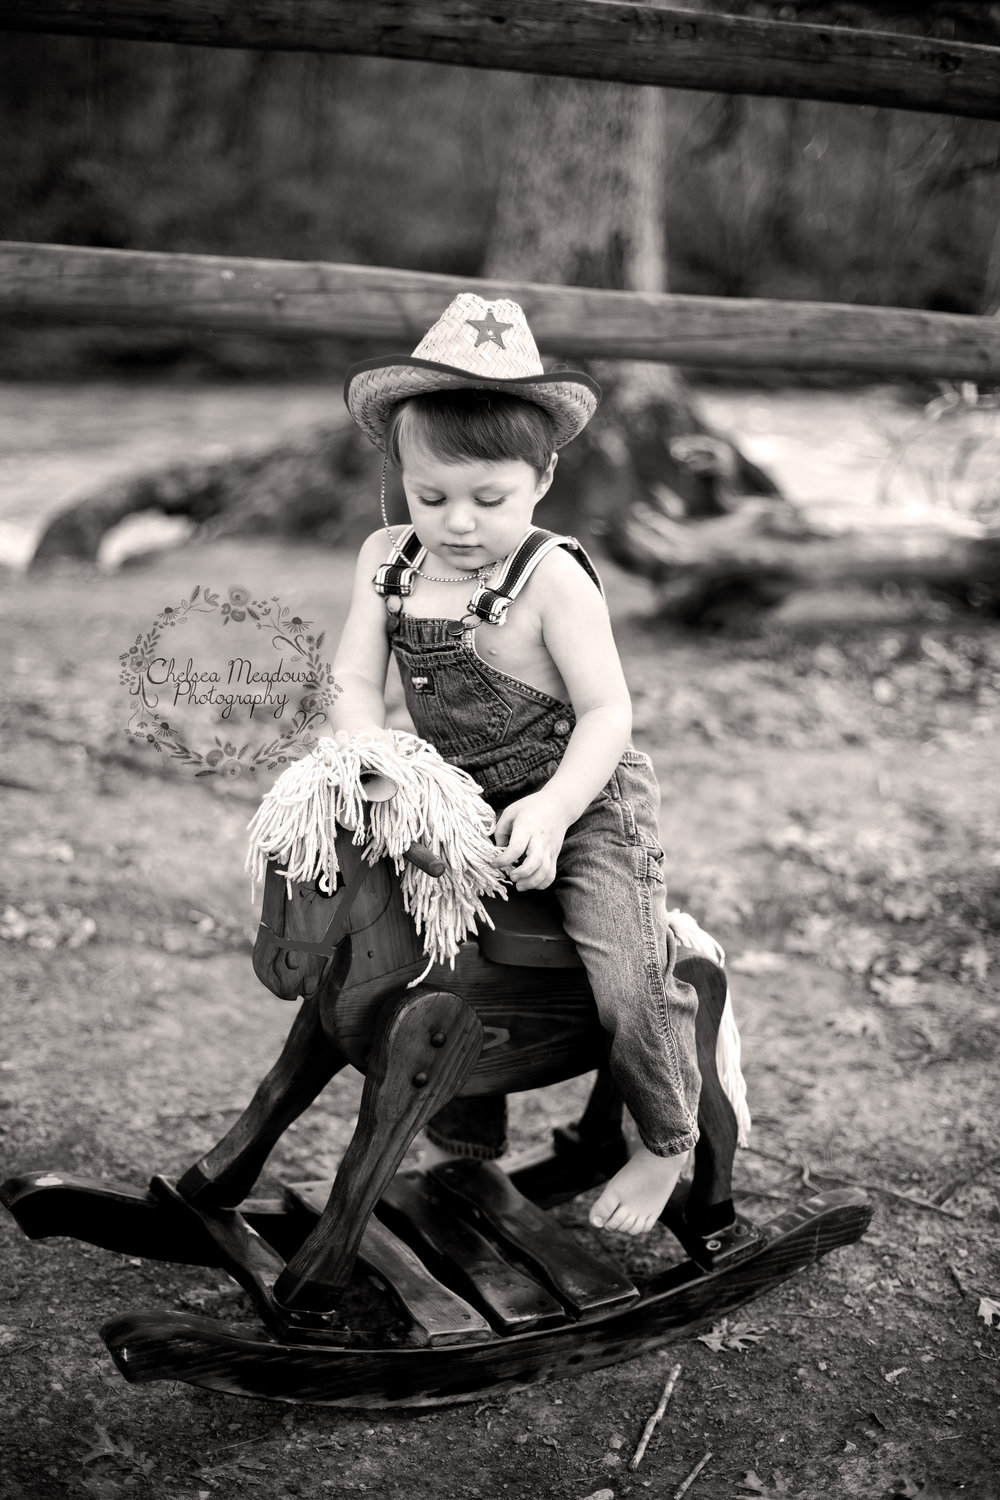 Grayson Cowboy Photos - Nashville family Photographer - Chelsea Meadows Photography (15)-2_edited-1.jpg